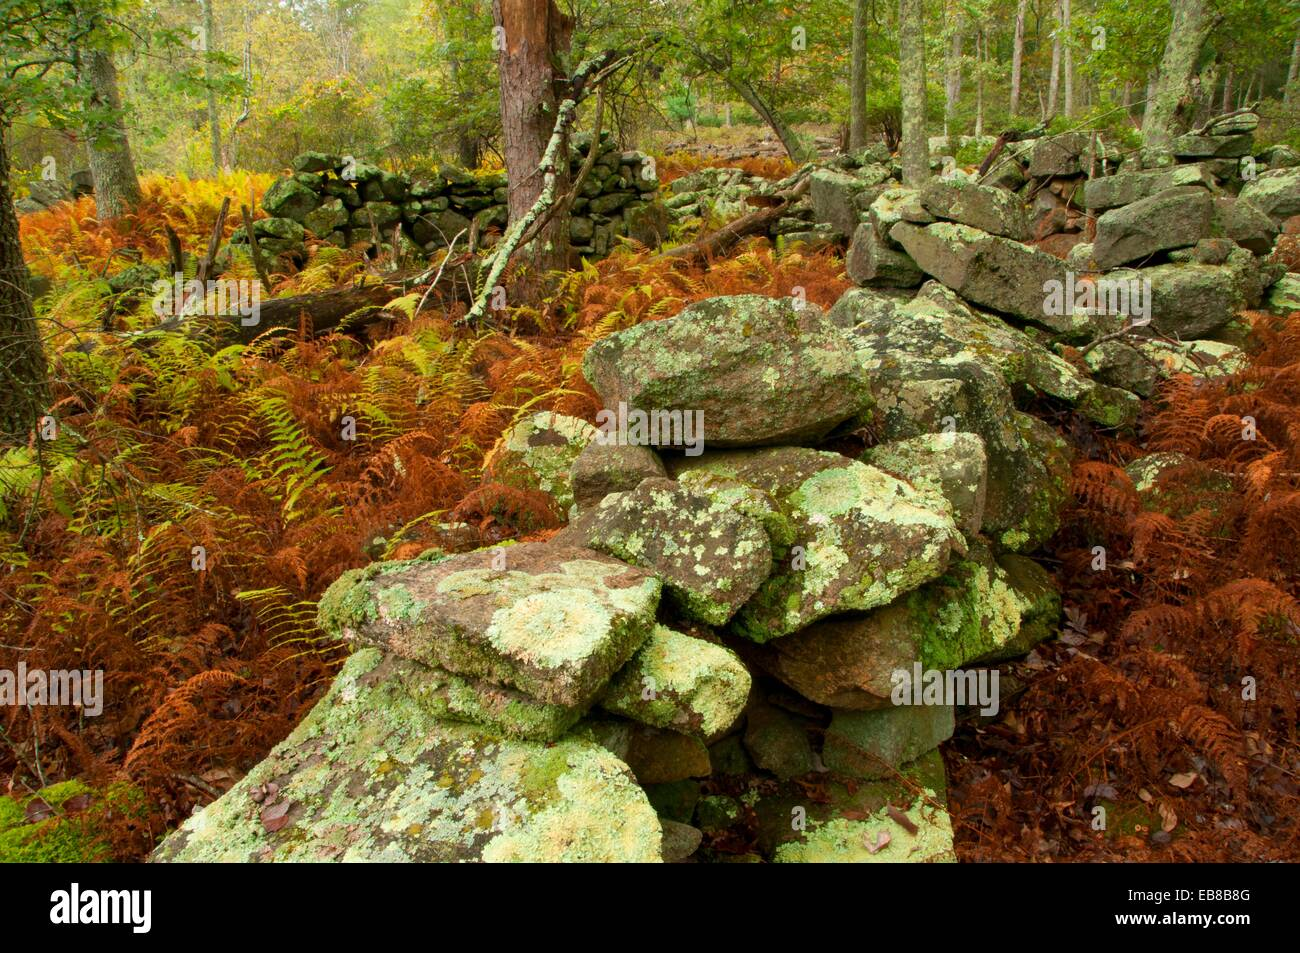 Rockwall along Crossover Trail, Pachaug State Forest, Connecticut - Stock Image